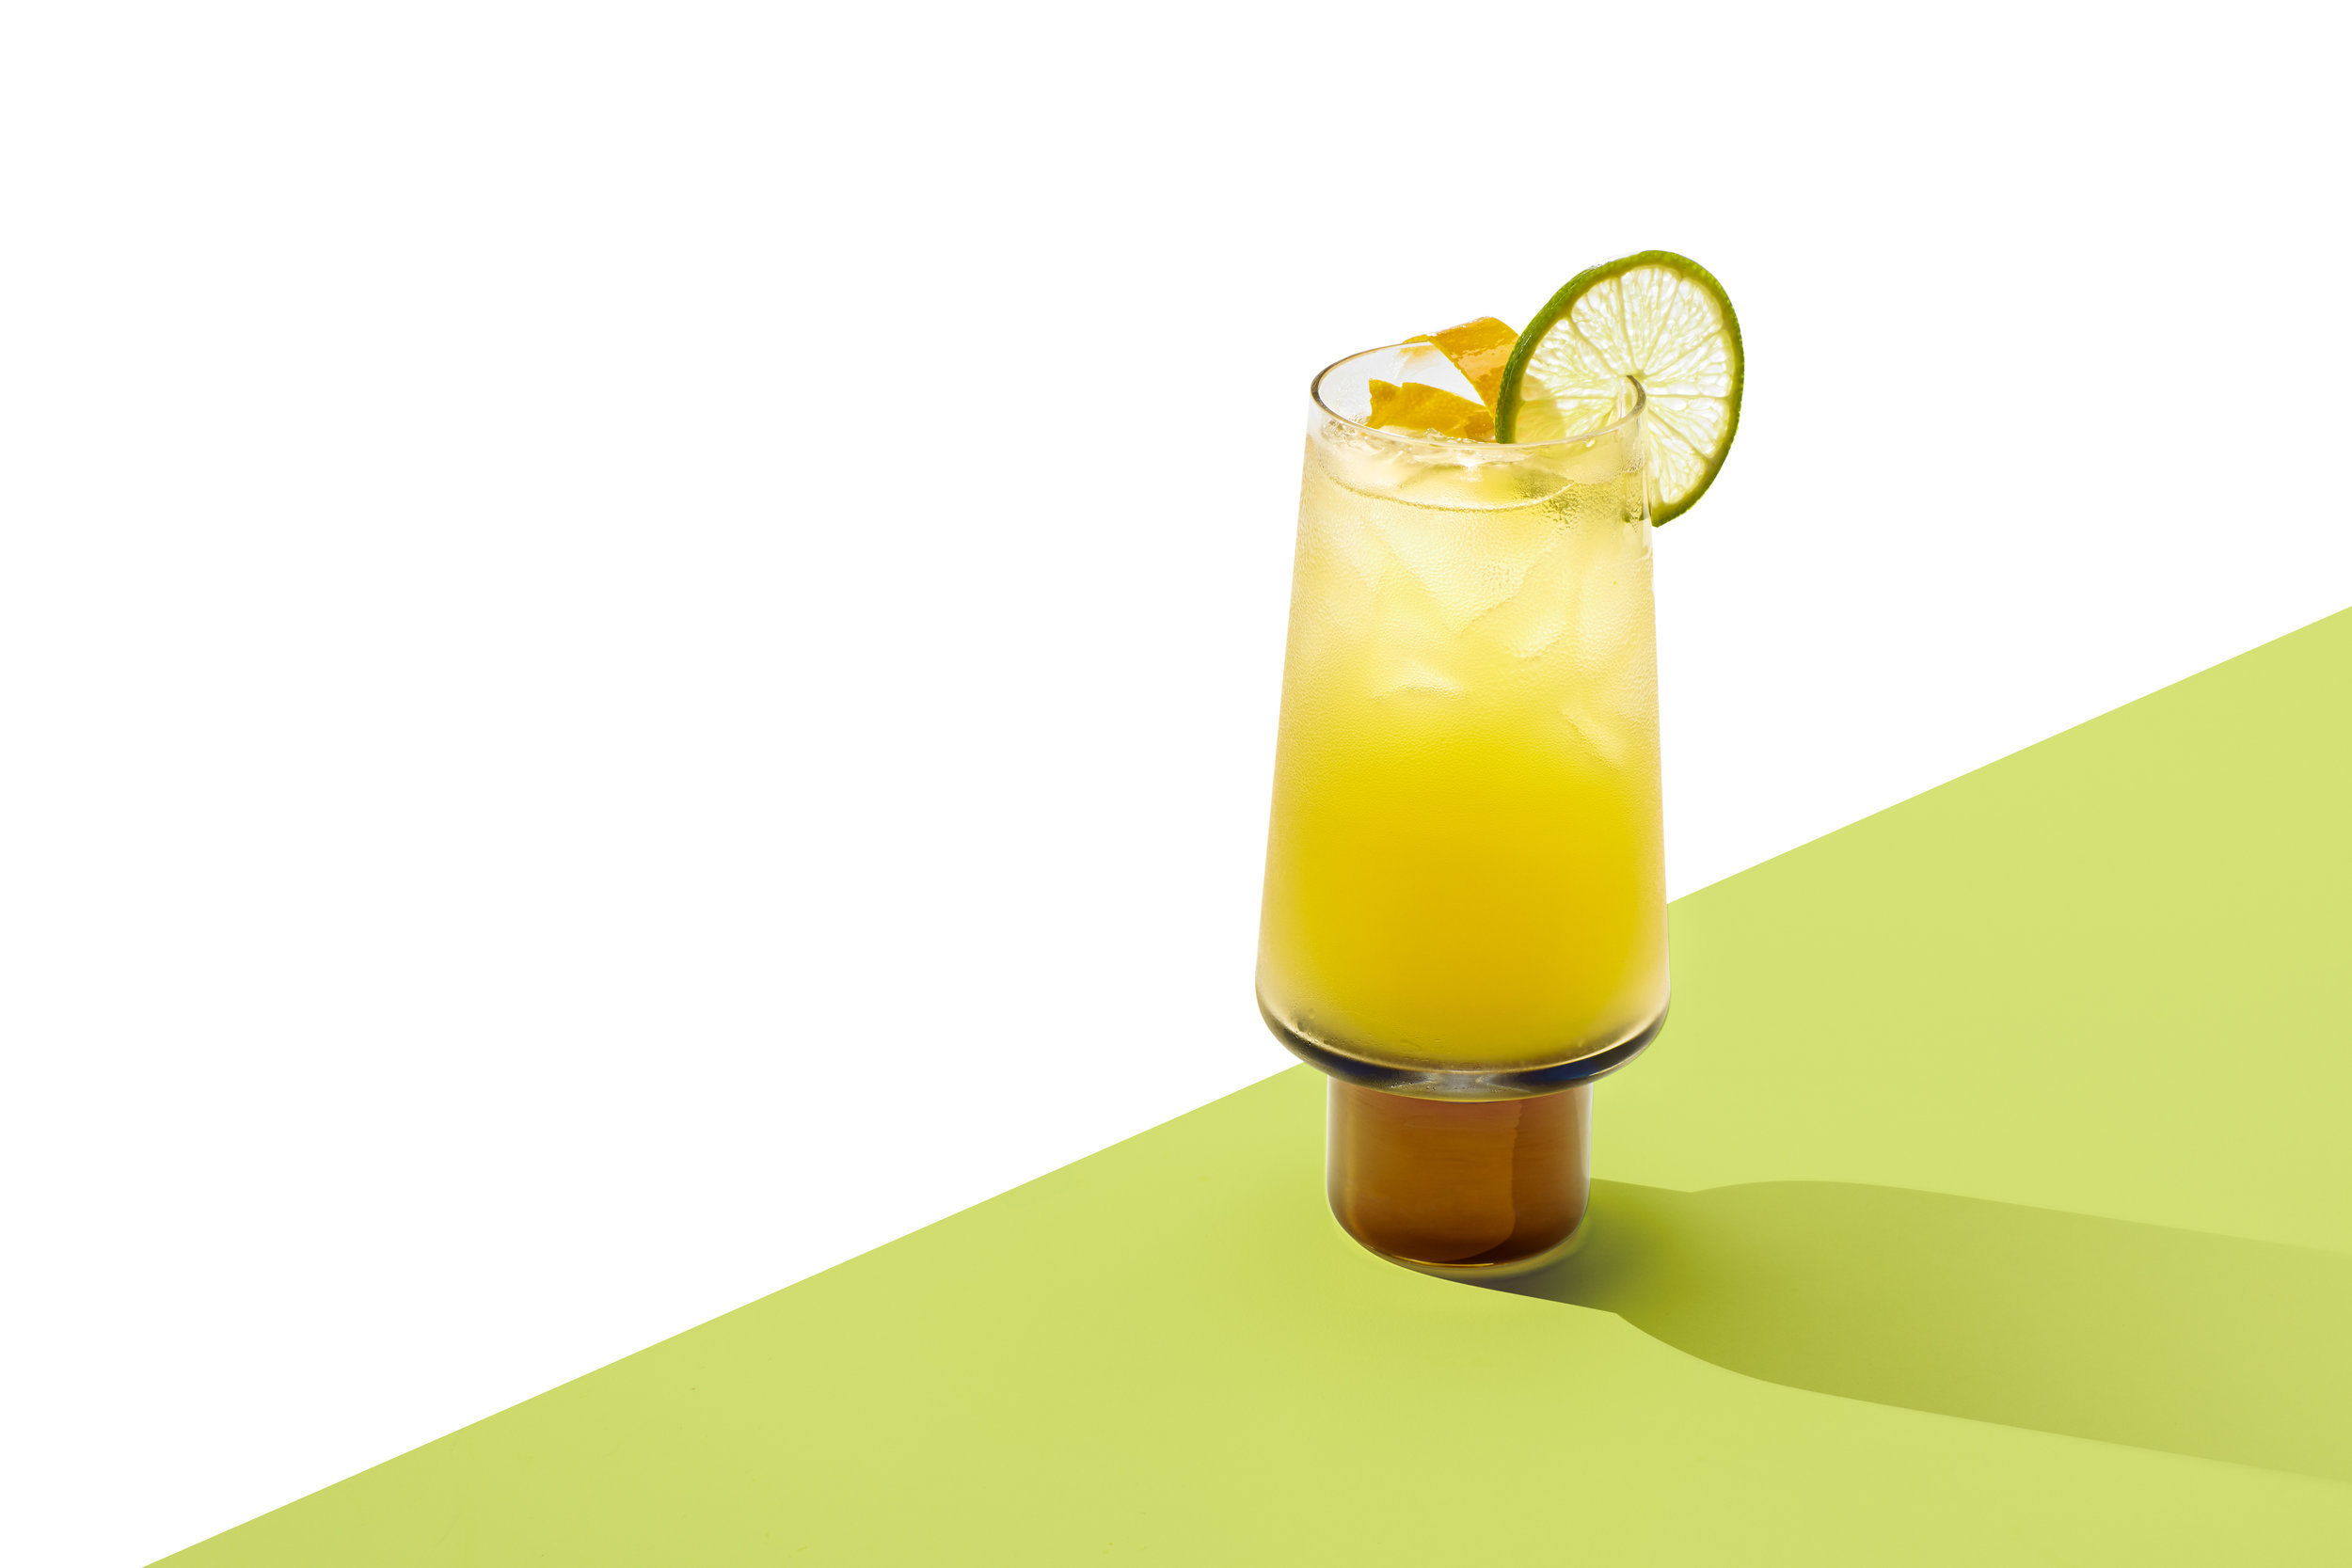 ANEJO HIGHBALL - 1.5 oz Aged Rum.75 oz FV Mexican Lime & Agave2 dashes Angostura or Degroff's Bitters2 oz Ginger BeerBuild first four ingredients over ice in a tall glass, top with ginger beer, stir gently, and garnish.Glass: Collins/HighballGarnish: an orange slice and a lime wheelYield: 6.5 oz